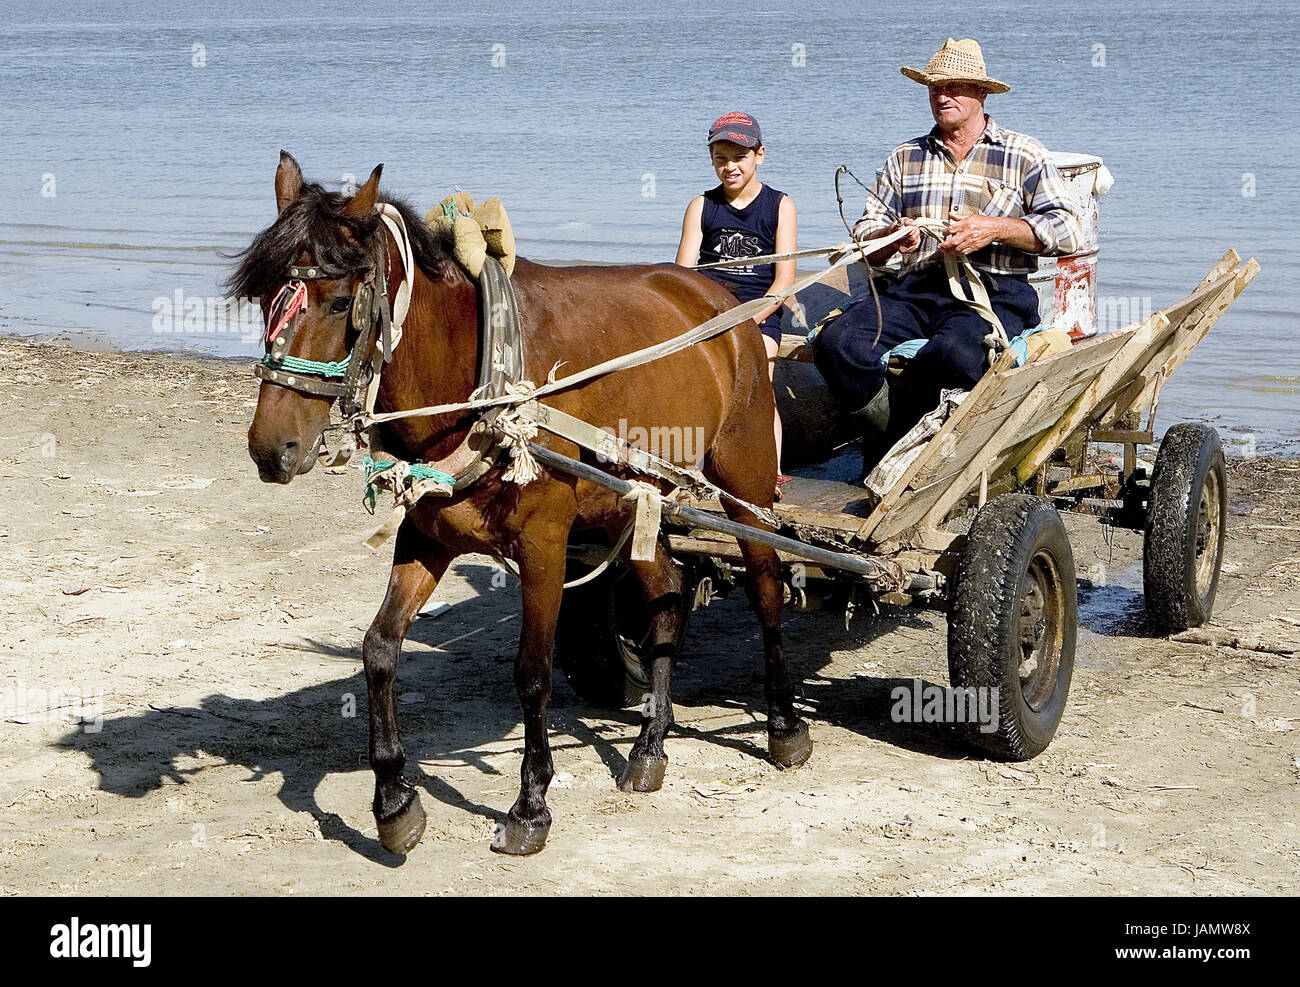 Romania,Danube delta,Galati,flux Danube,horse carriage,man,boy,no model release,town,water,outside,carriages,carts,horse,animal,benefit - Stock Image